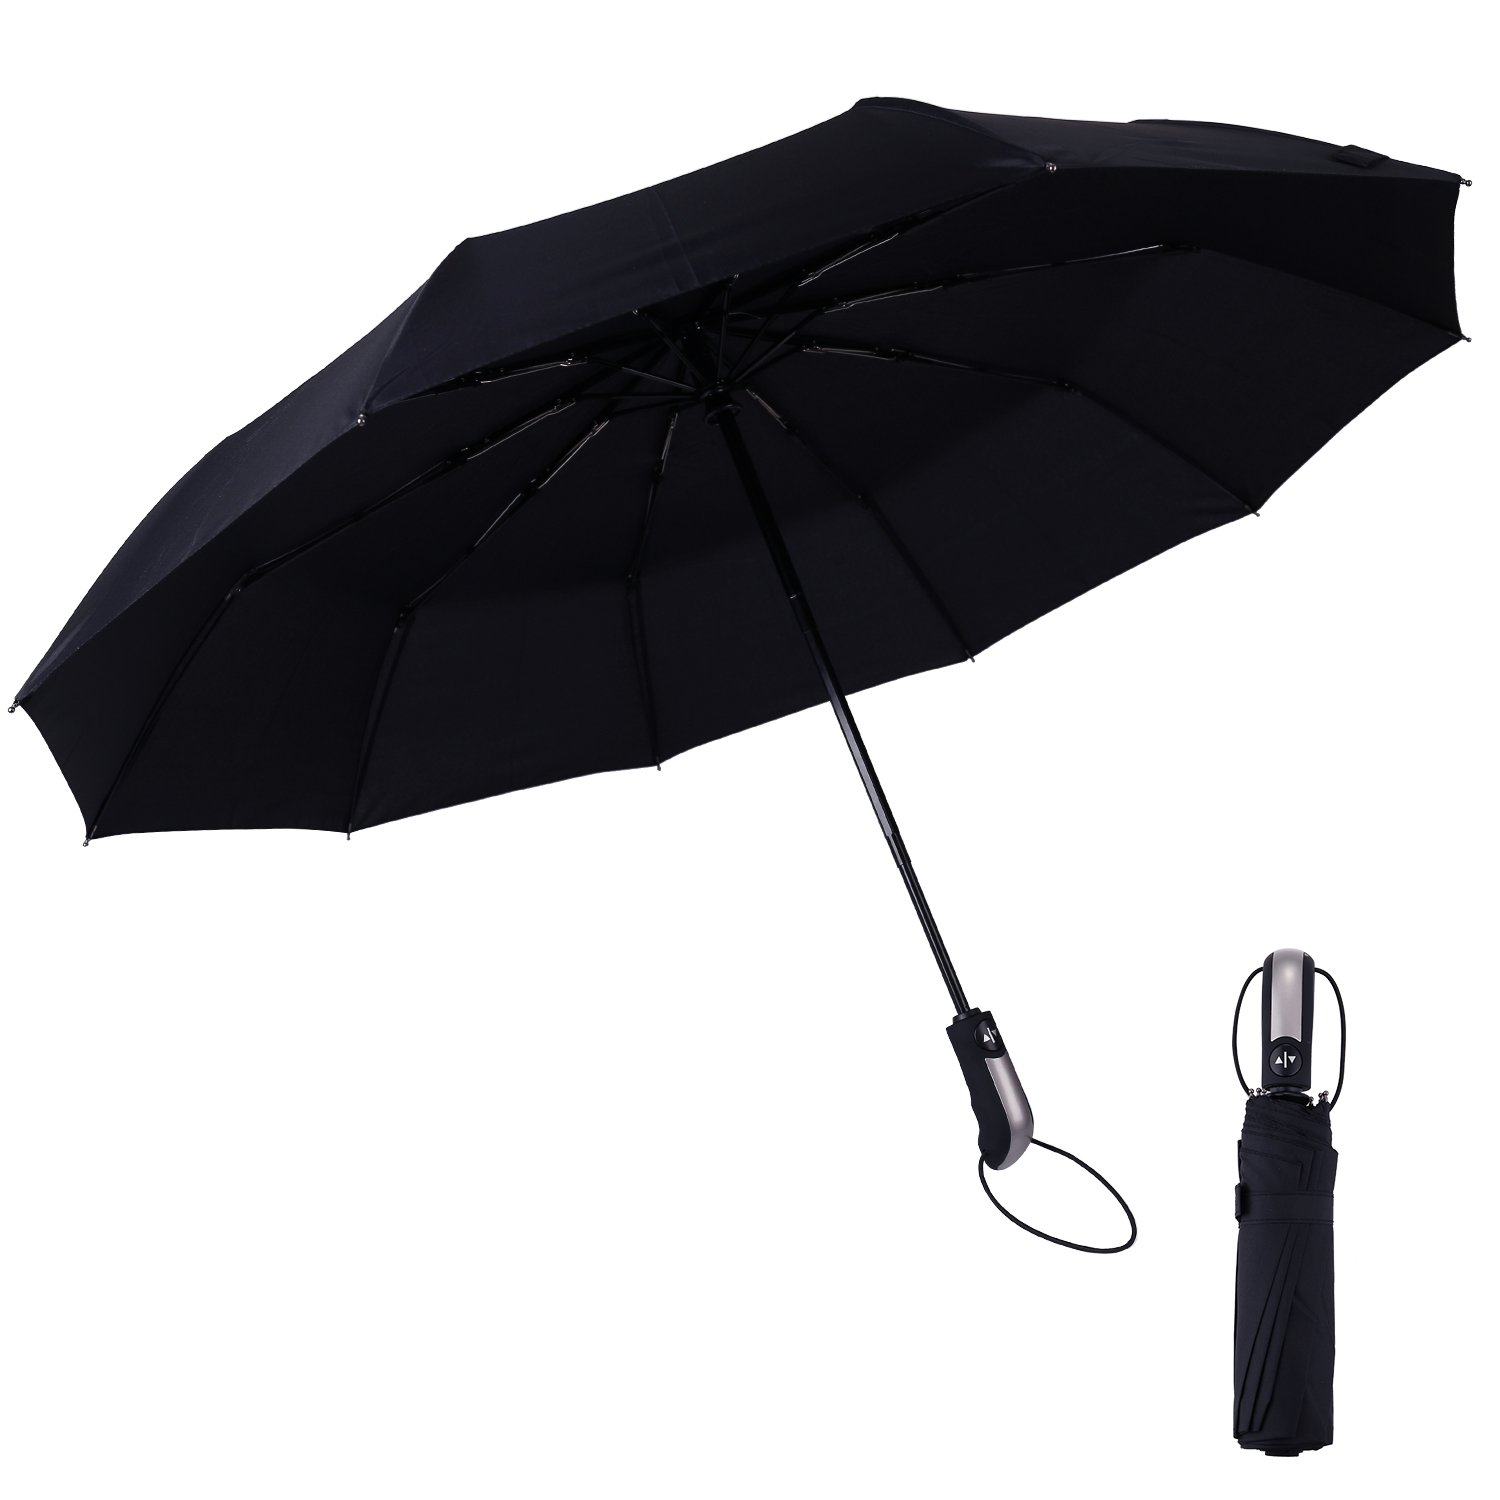 new Q-YEE Travel Foldable Umbrella with Auto-Open and Close Windproof Fast Dry